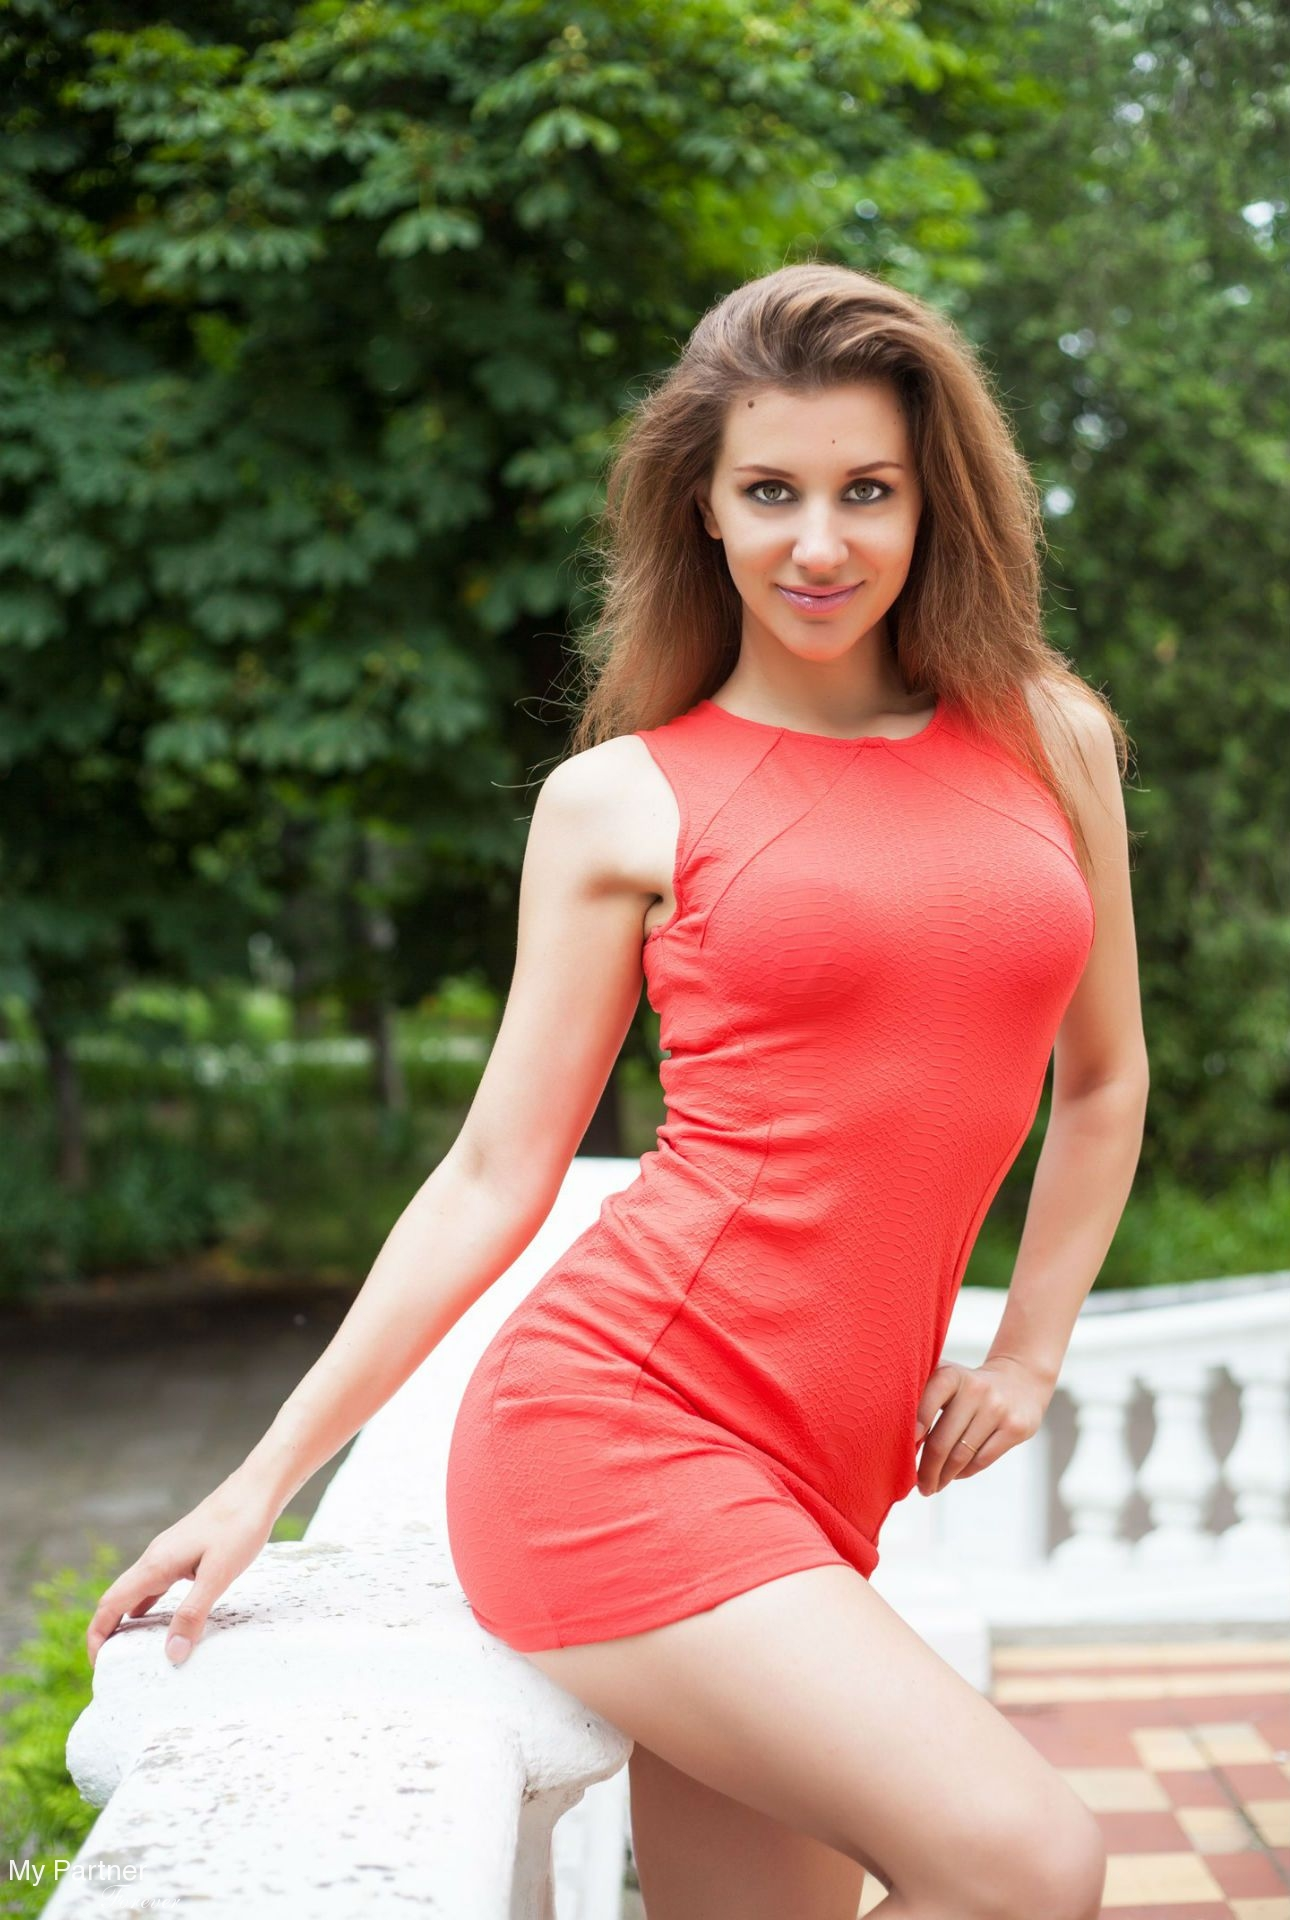 Women Ukraine Brides Seeking 79